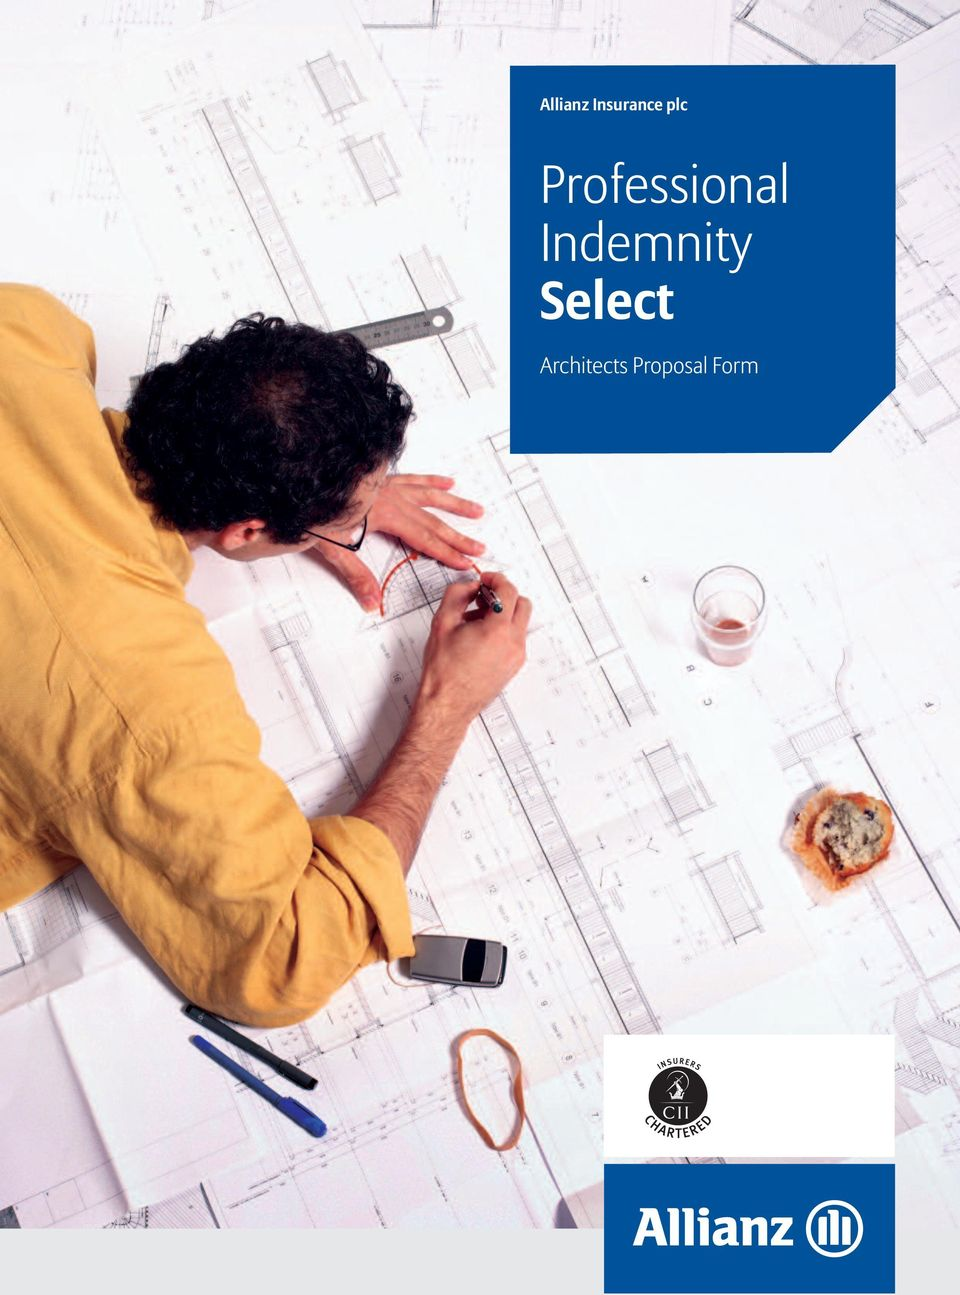 Indemnity Select